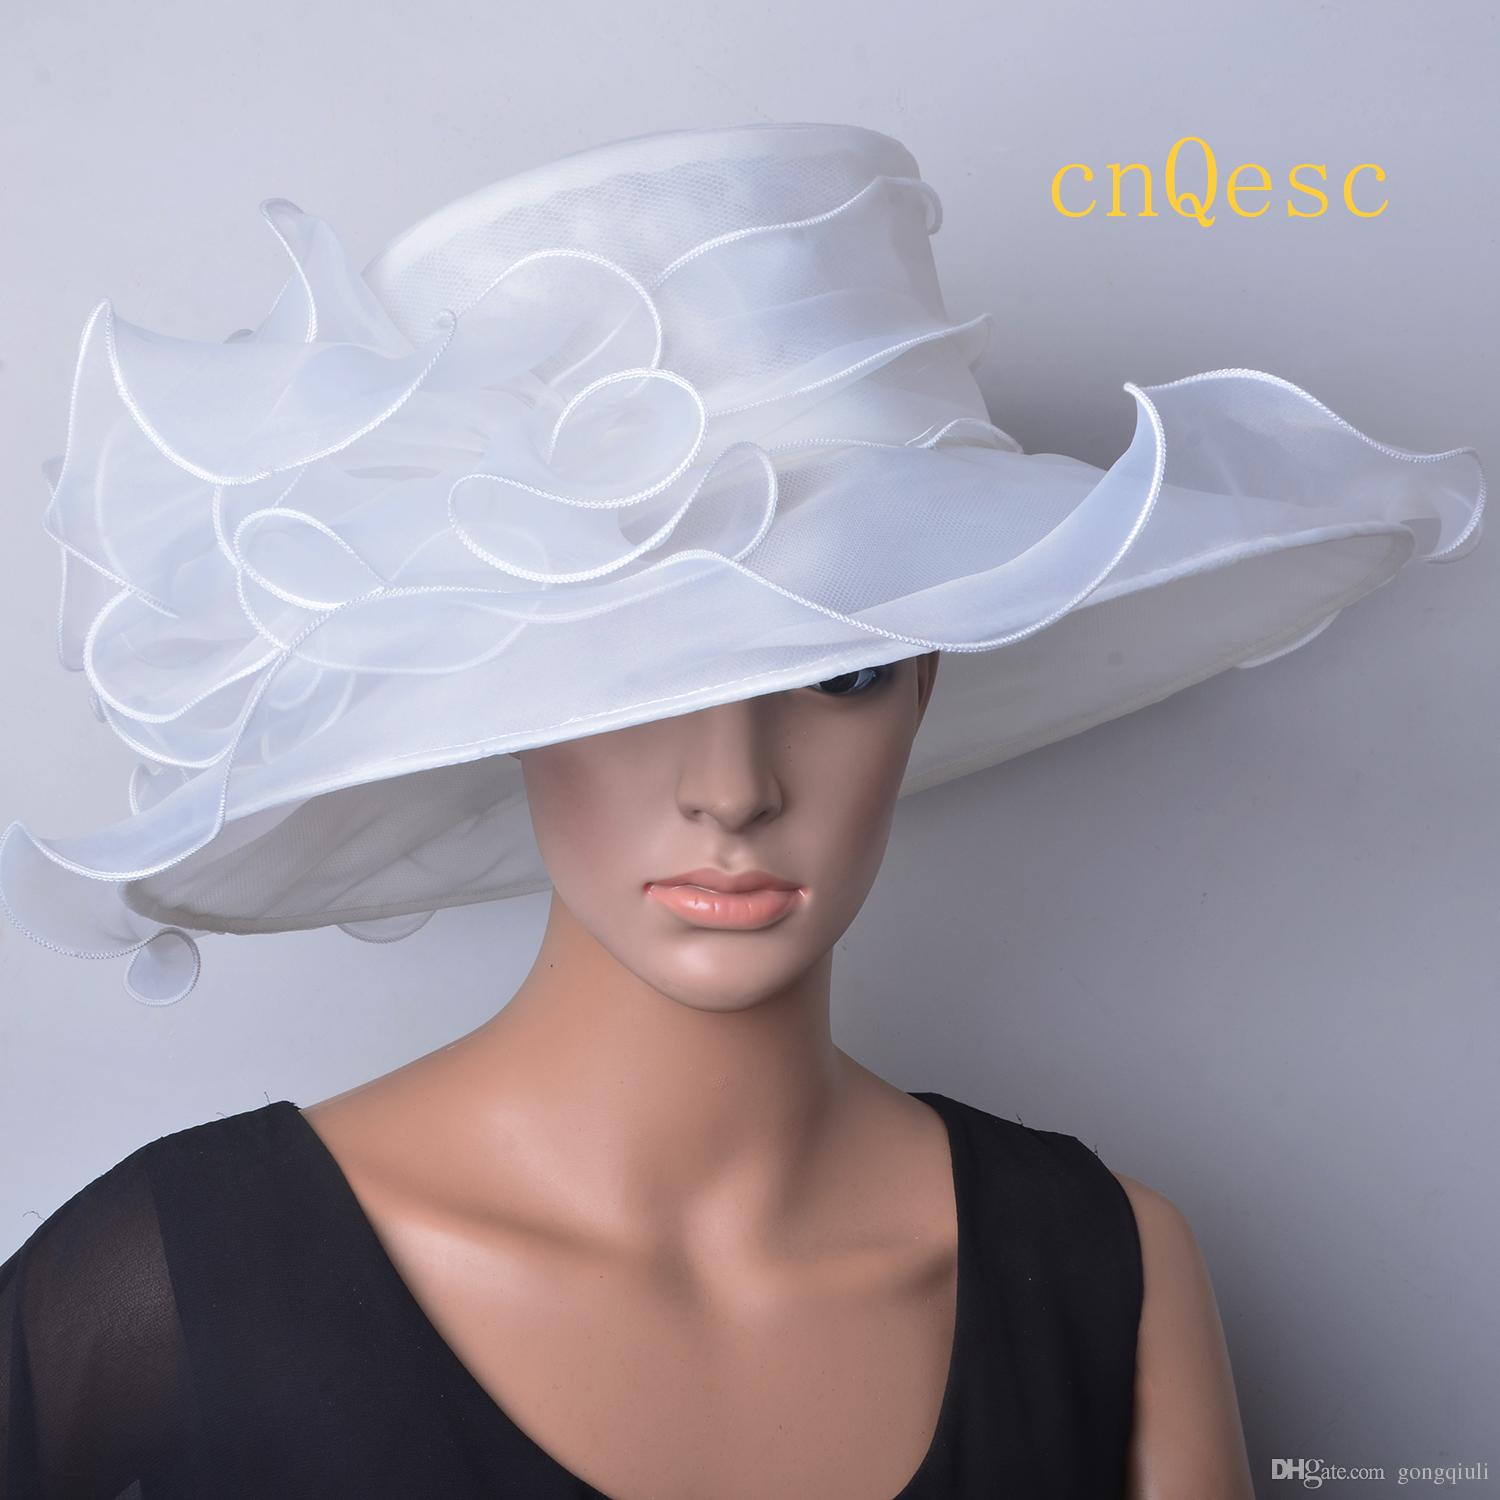 Cappello in organza avorio Cappello donna Derby Kentucy Cappello da sposa per matrimonio chiesa derby.brim larghezza 13,5 cm.